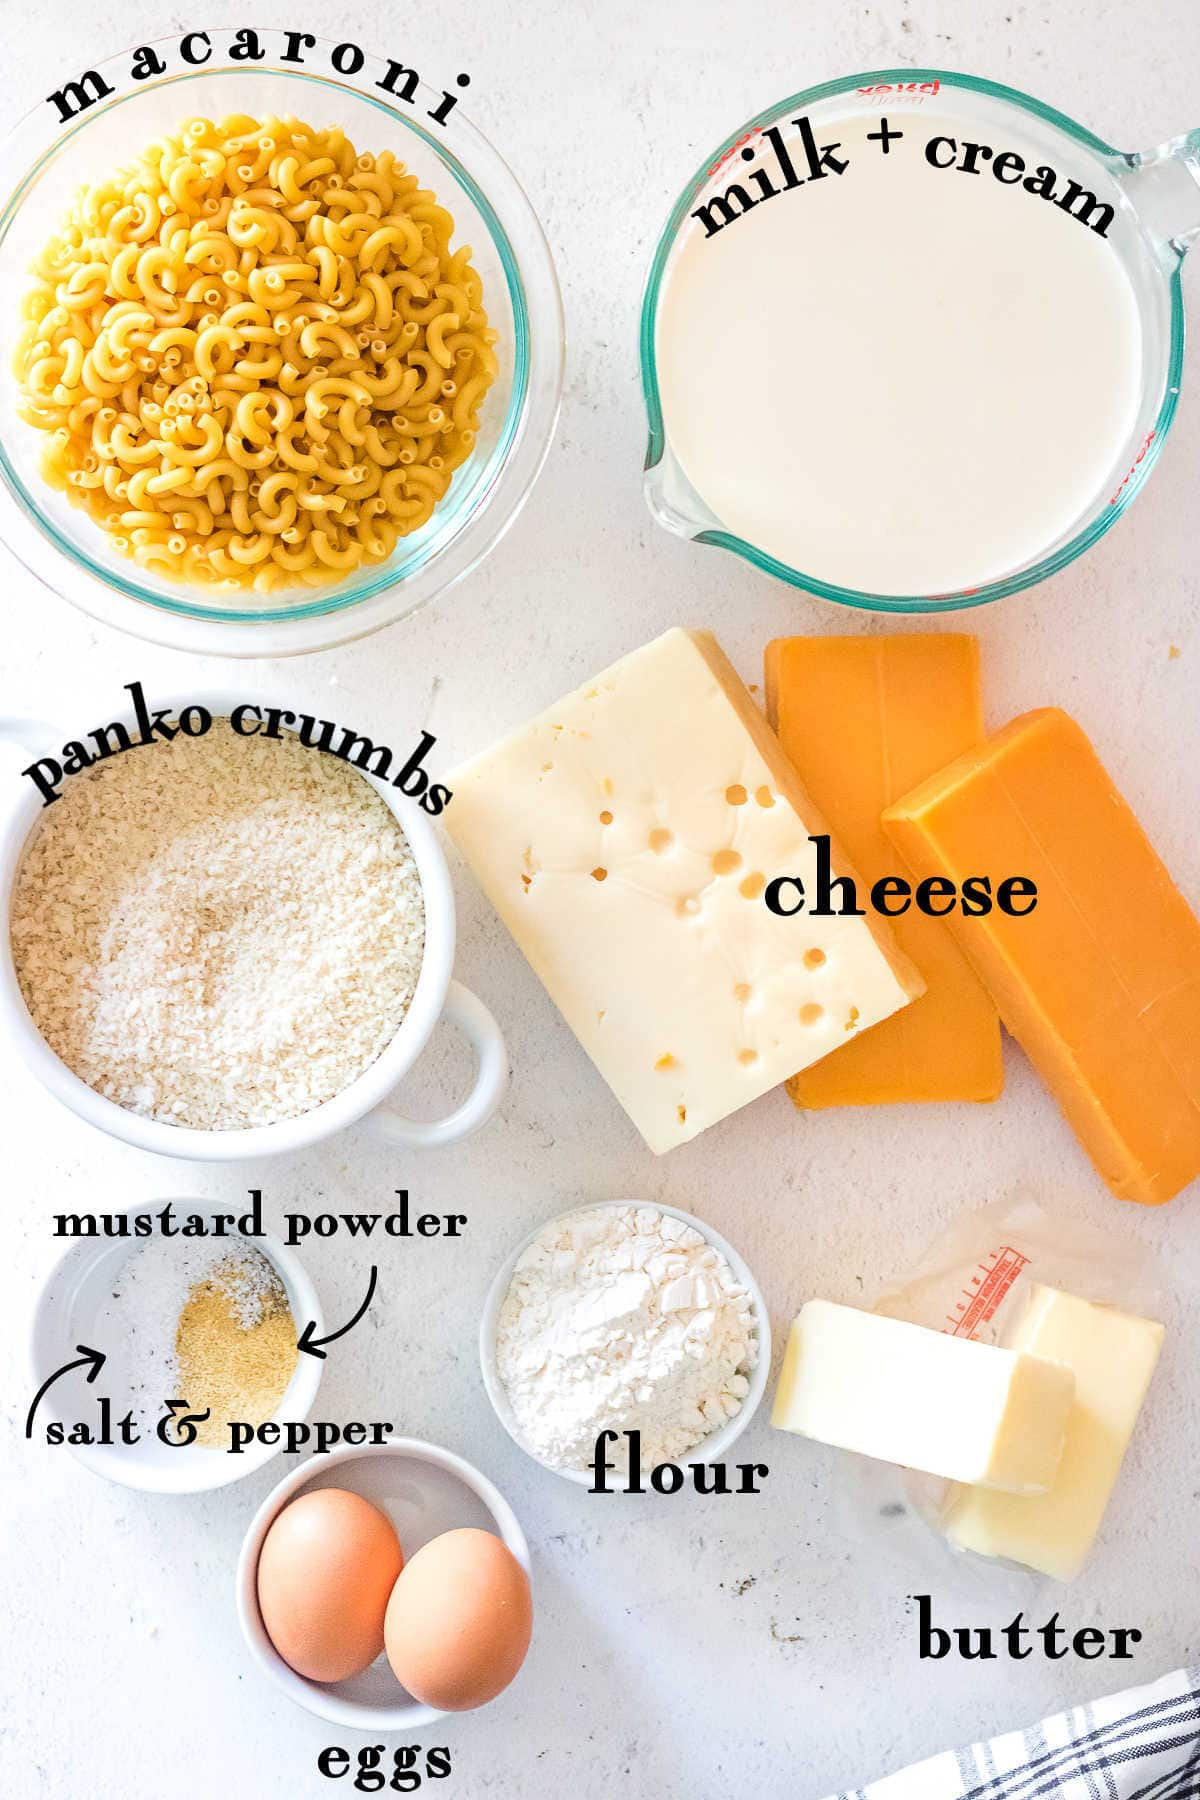 Labeled ingredients for macaroni and cheese recipe.